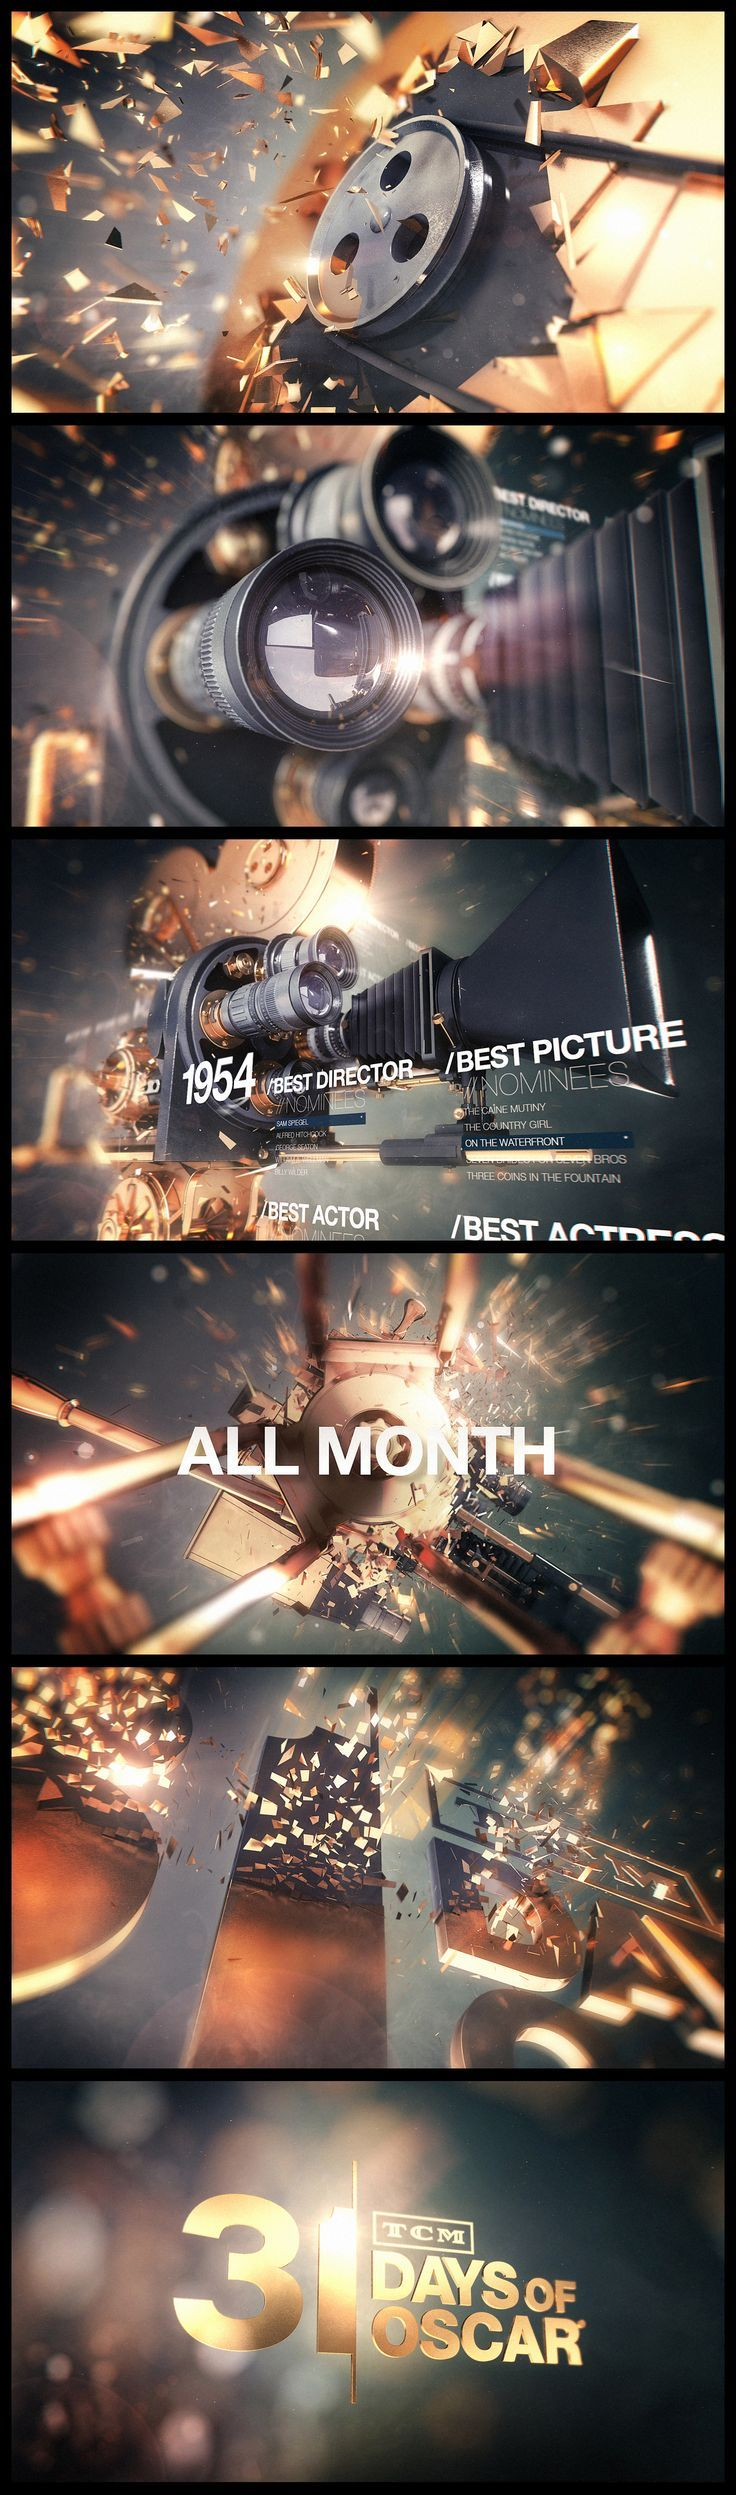 Pitch for TCM's 31 Days of Oscars by Brett Morris Design boards and styleframes. Mograph